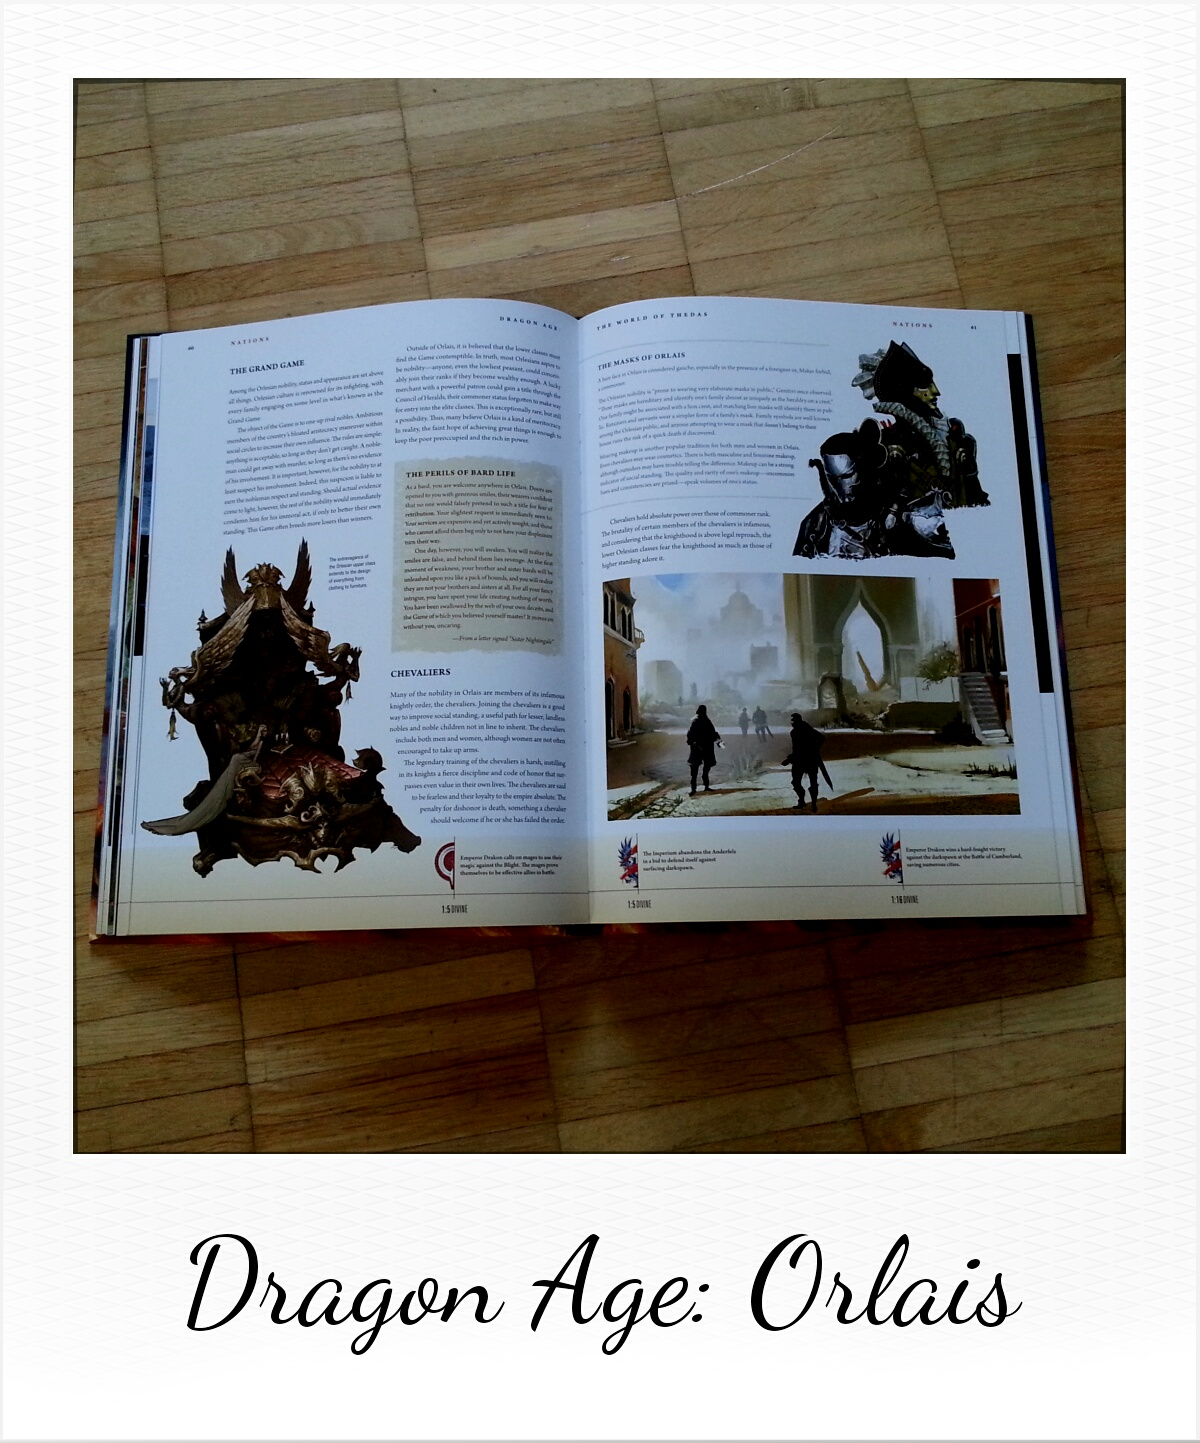 Dragon Age: The World of Thedas - Volume 1 (private picture of some Orlais pages from the book by Dark Horse Comics)